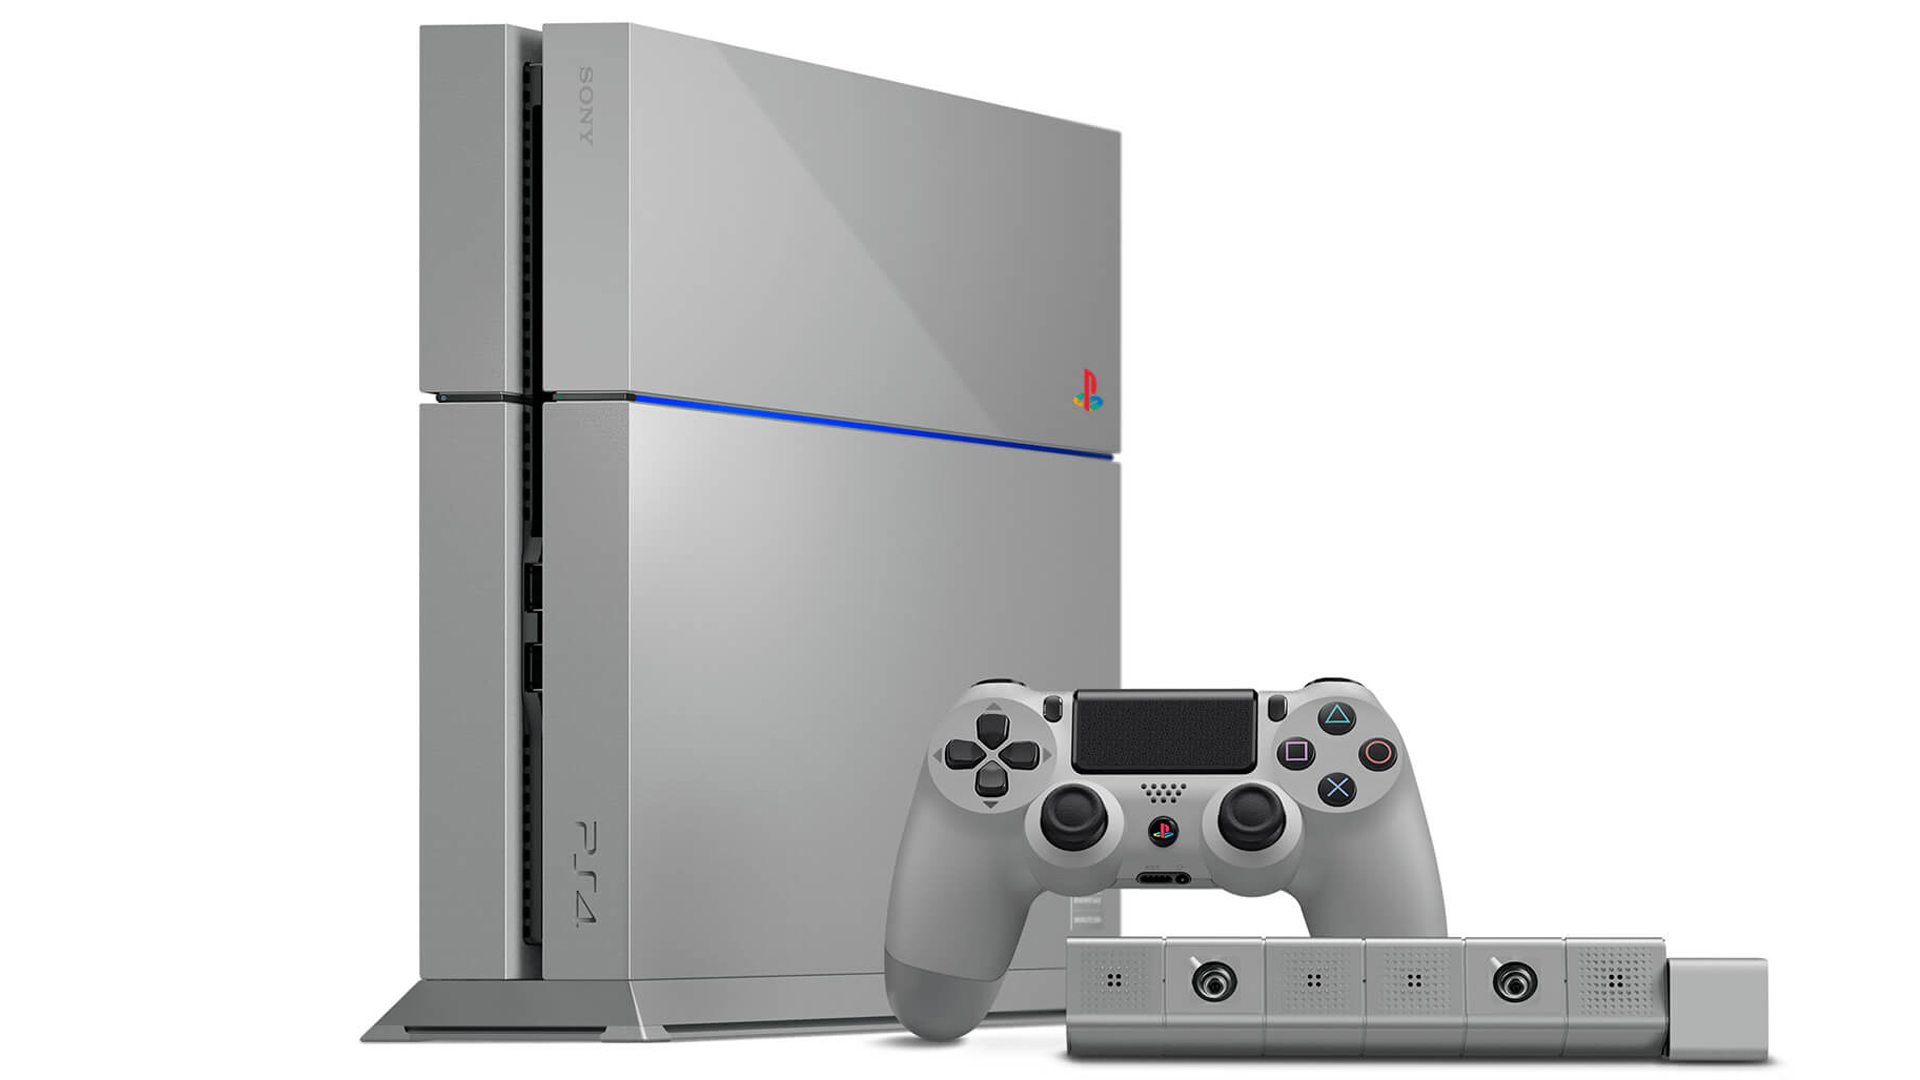 Rarest and most expensive limited edition PS4 consoles (and